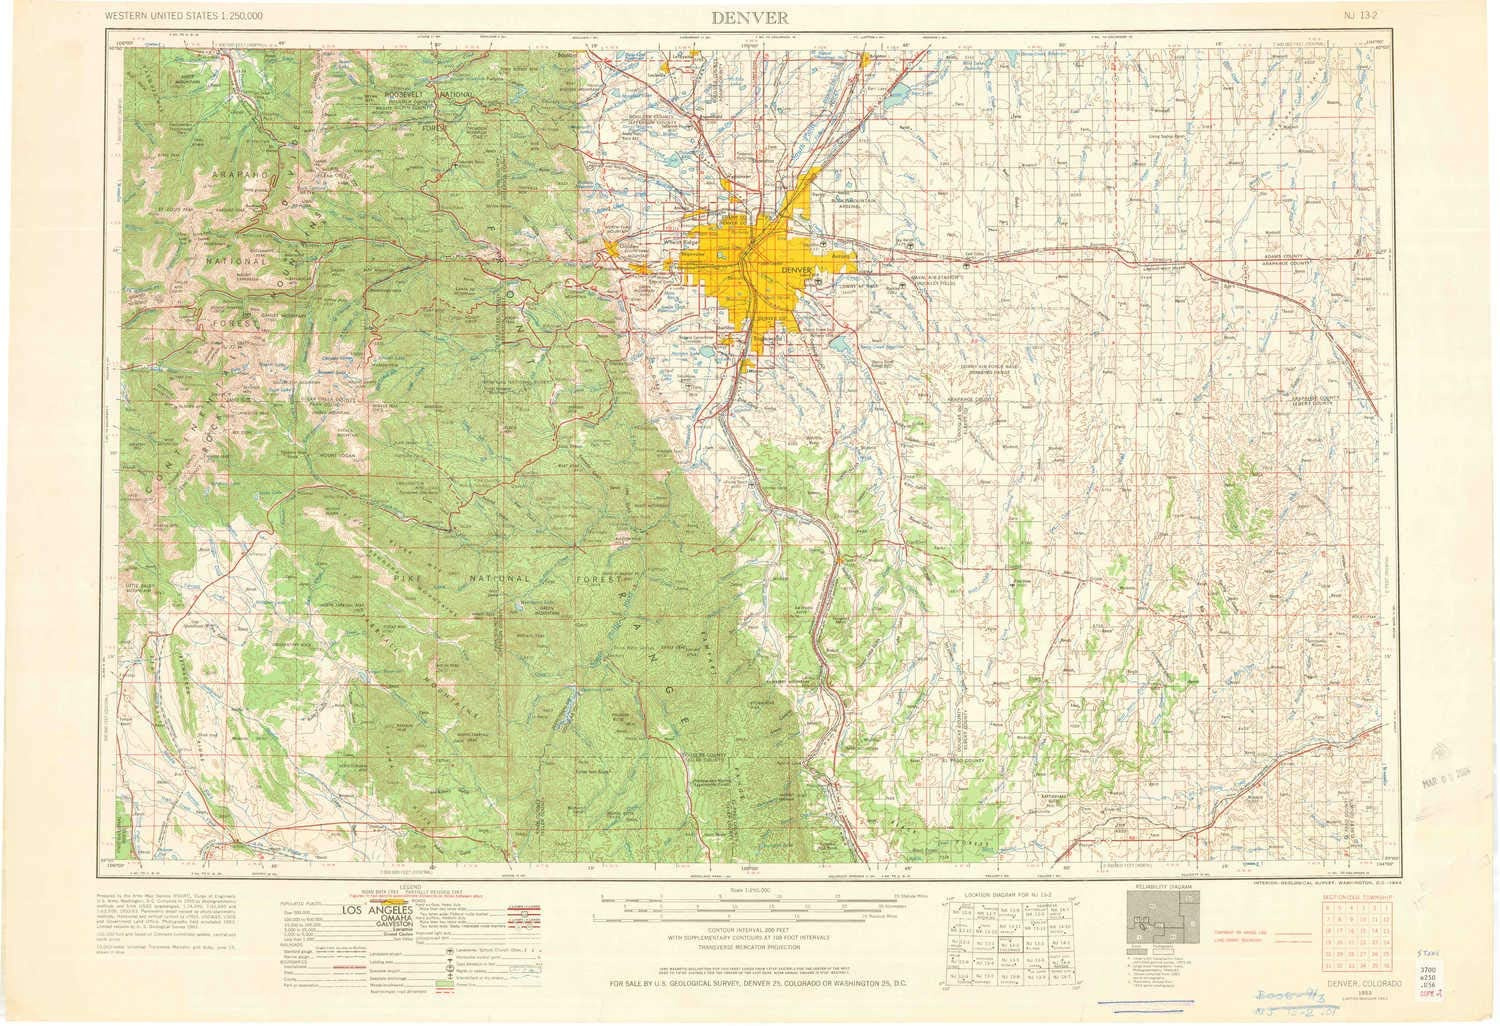 amazon com yellowmaps denver co topo map 1 250000 scale 1 x 2 degree historical 1953 updated 1964 22 1 x 32 3 in paper sports outdoors yellowmaps denver co topo map 1 250000 scale 1 x 2 degree historical 1953 updated 1964 22 1 x 32 3 in